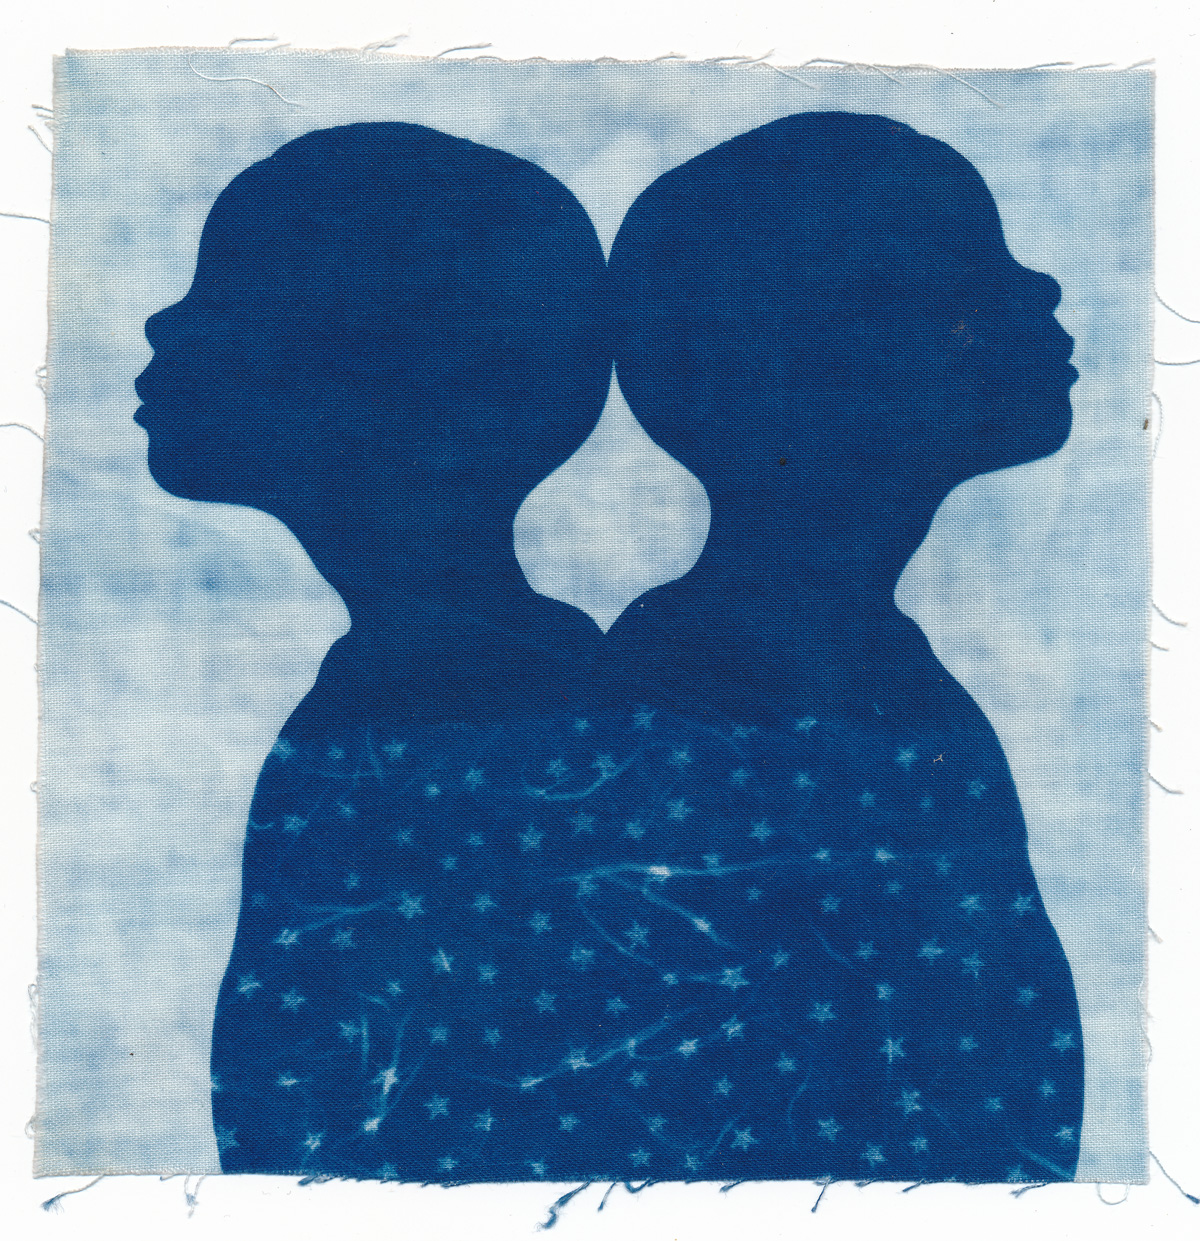 Gemini, cyanotype on cotton fabric, Mike Tedder